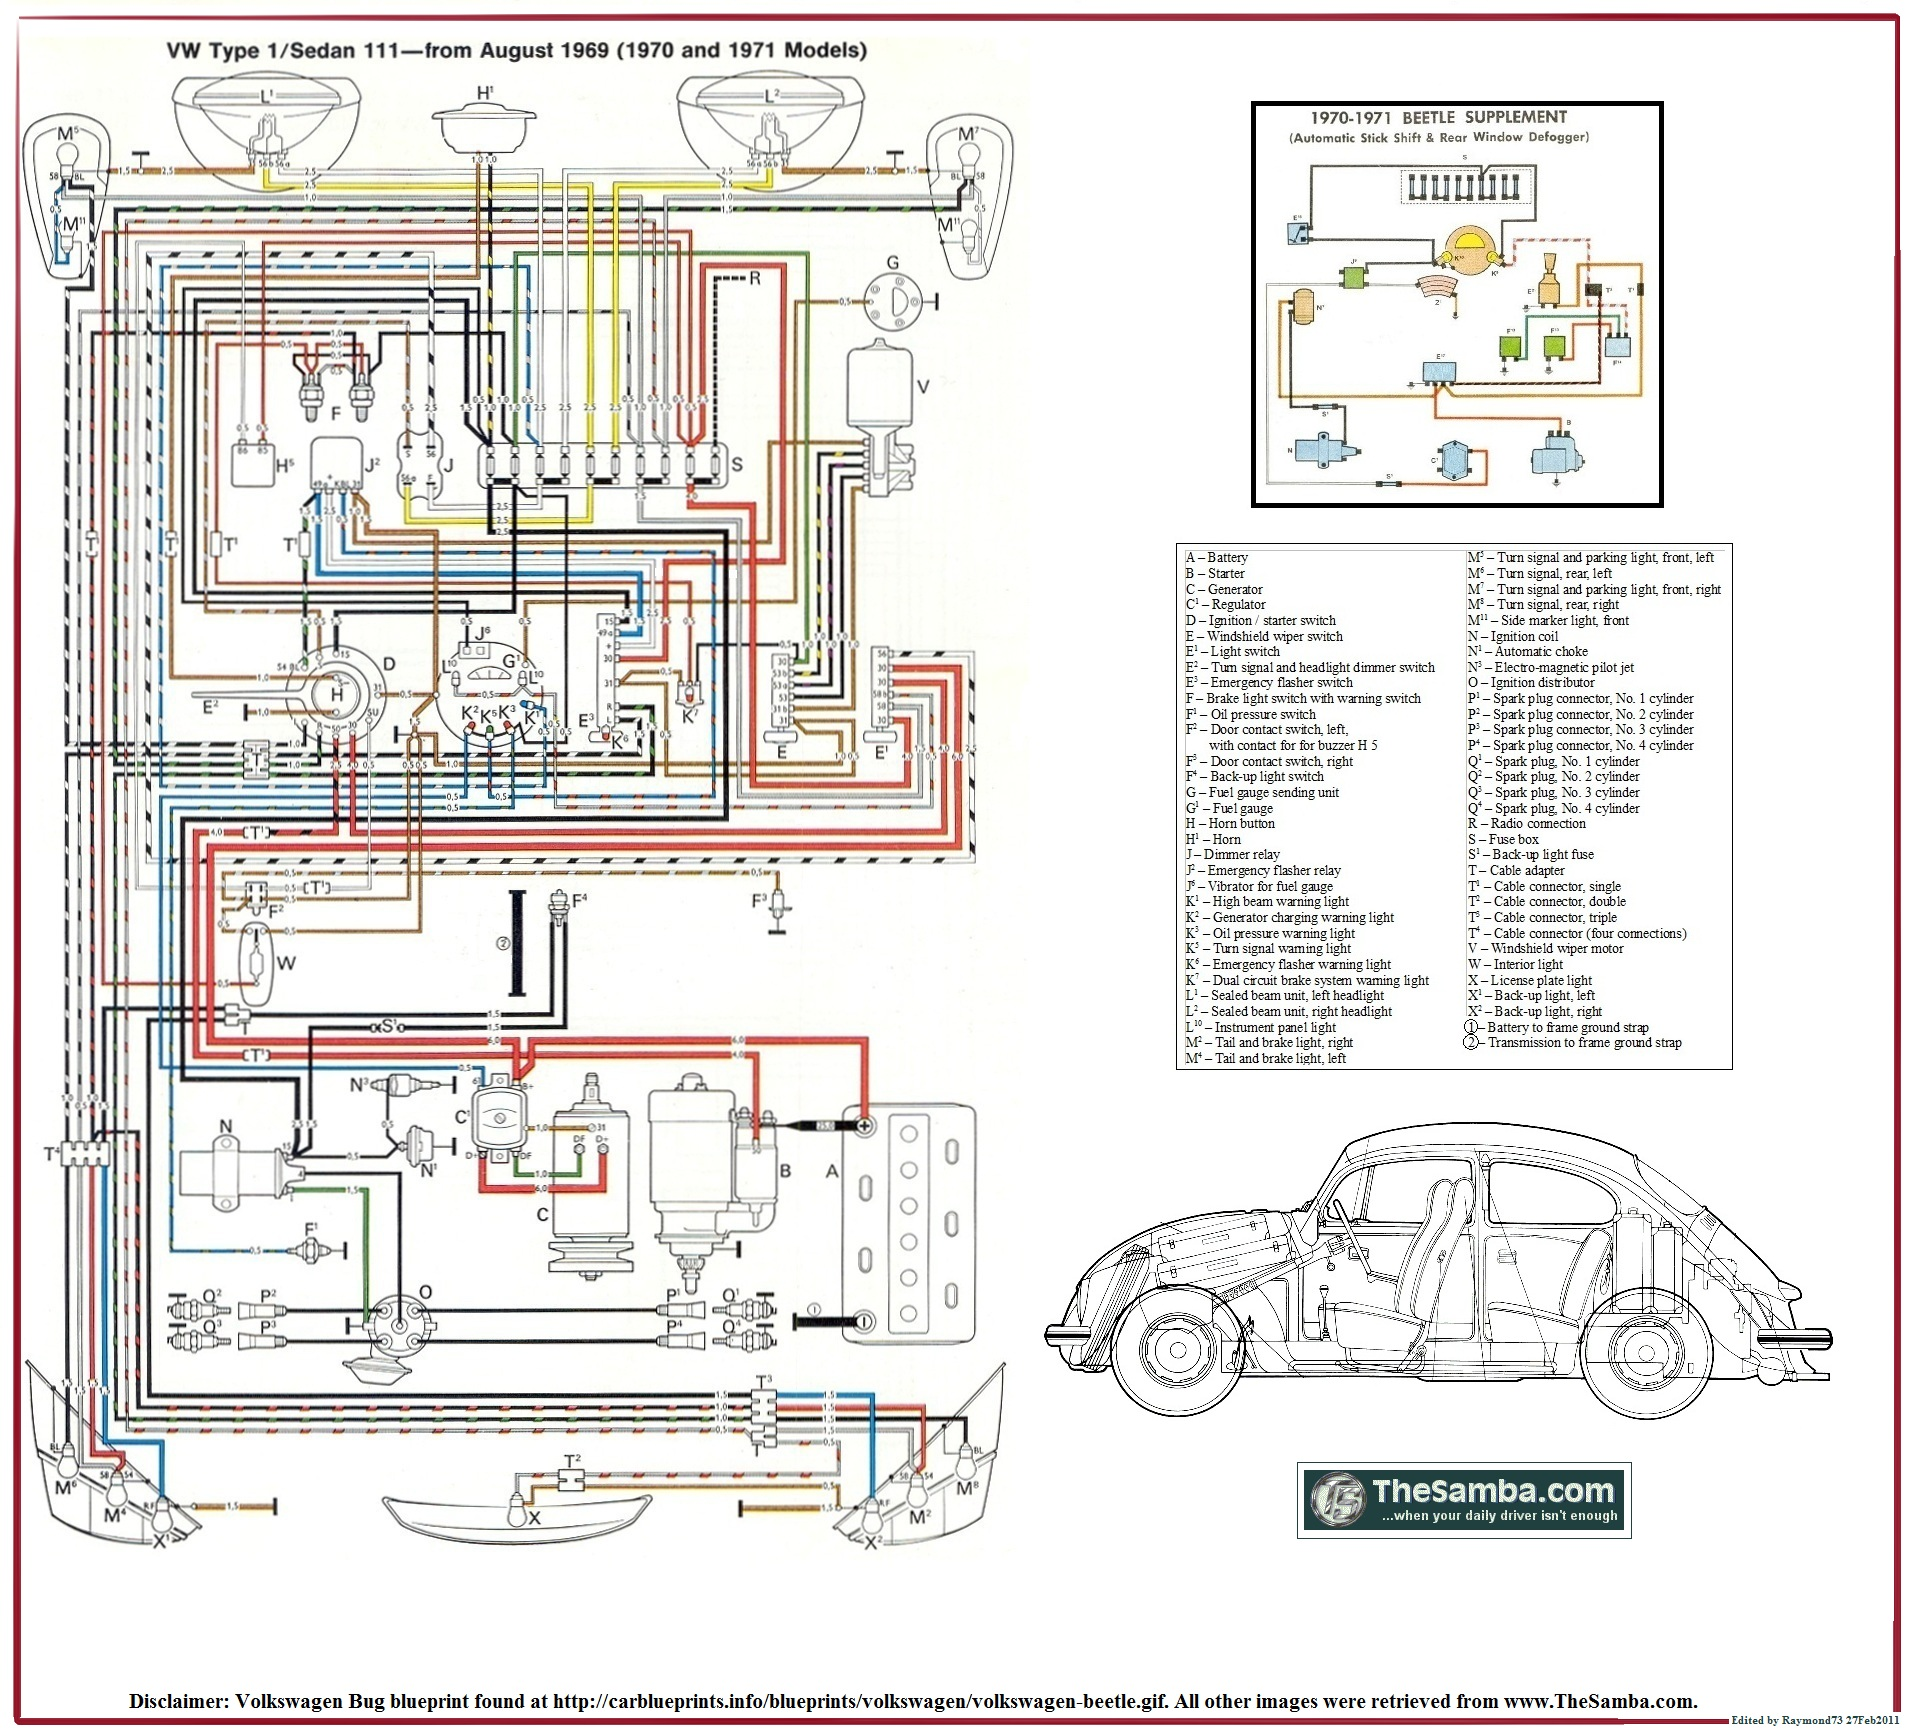 1970_VW_Type_1_Poster thesamba com beetle late model super 1968 up view topic vw beetle wiring diagram at virtualis.co